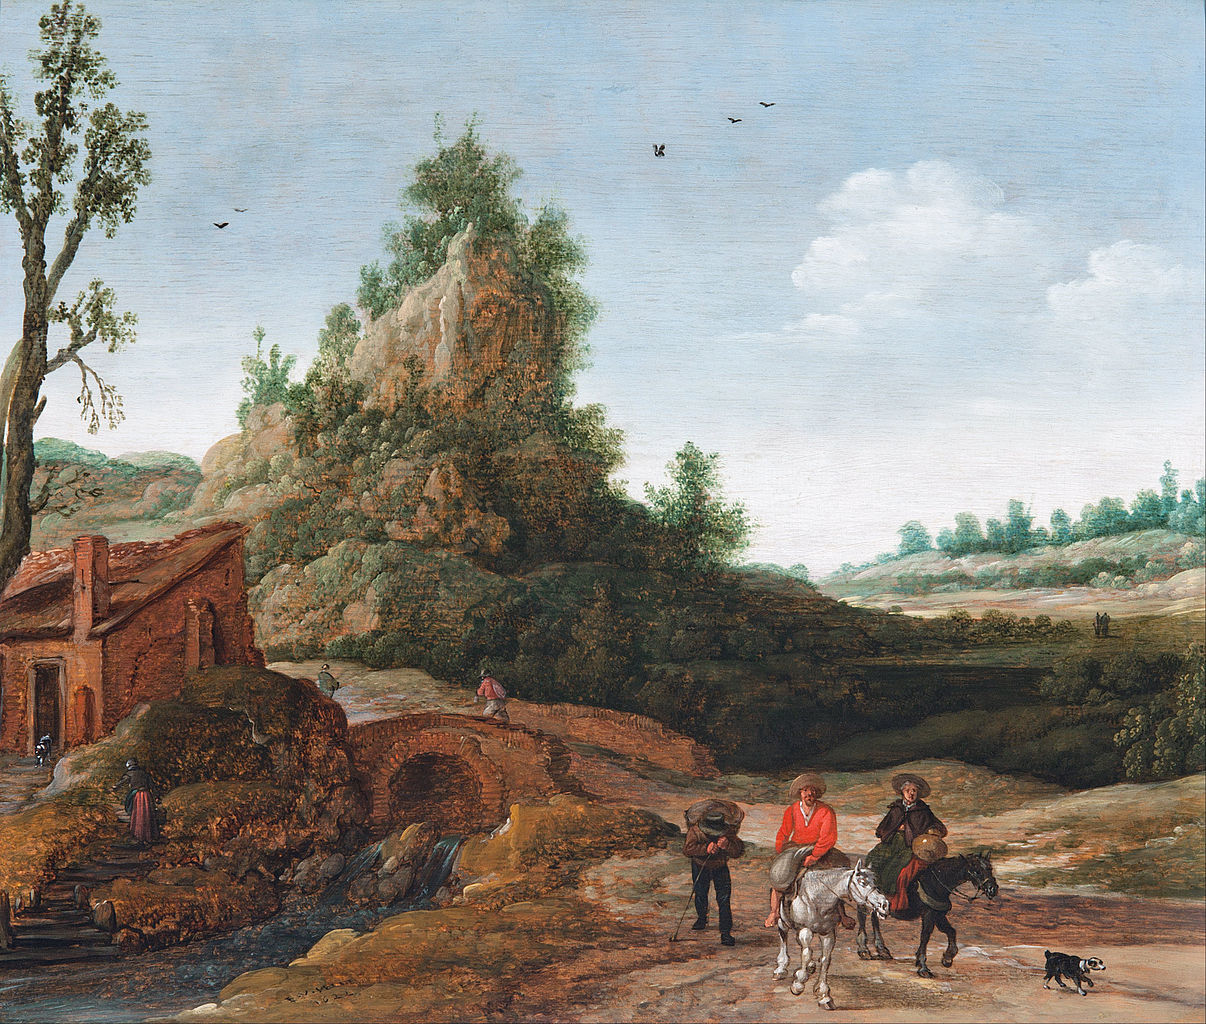 https://upload.wikimedia.org/wikipedia/commons/thumb/c/c5/Esaias_van_de_Velde_-_A_landscape_with_travellers_crossing_a_bridge_before_a_small_dwelling%2C_horsemen_in_the_foreground_-_Google_Art_Project.jpg/1206px-Esaias_van_de_Velde_-_A_landscape_with_travellers_crossing_a_bridge_before_a_small_dwelling%2C_horsemen_in_the_foreground_-_Google_Art_Project.jpg